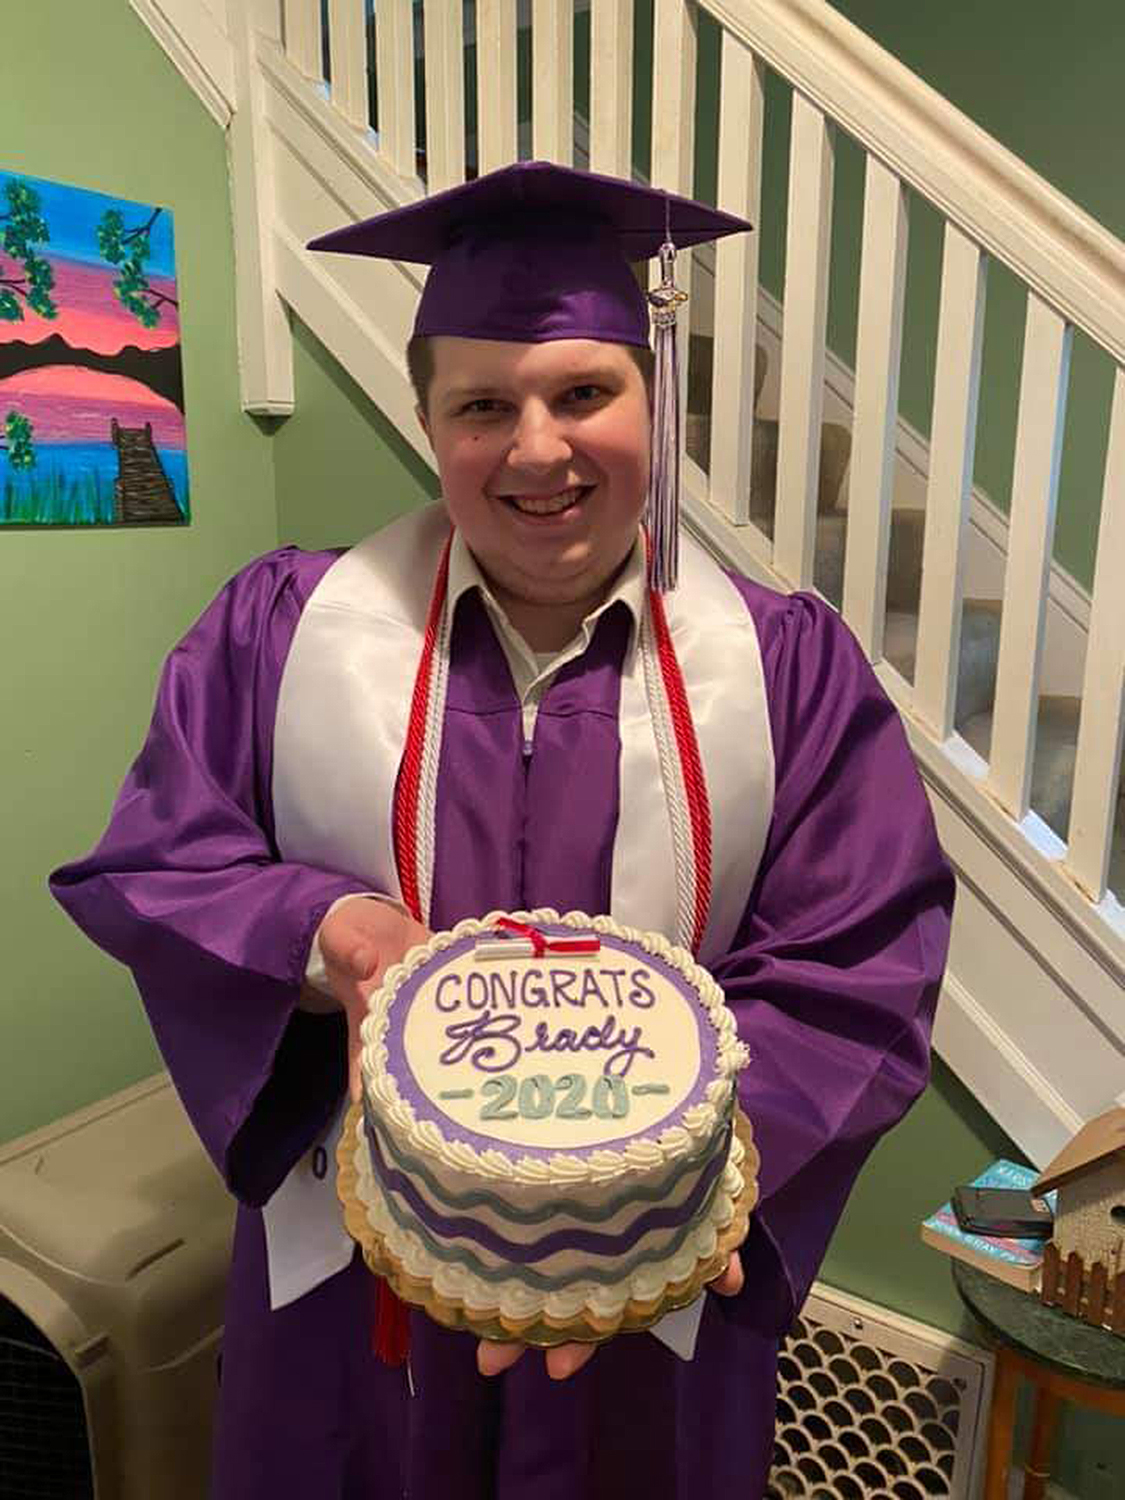 cakes for Grads